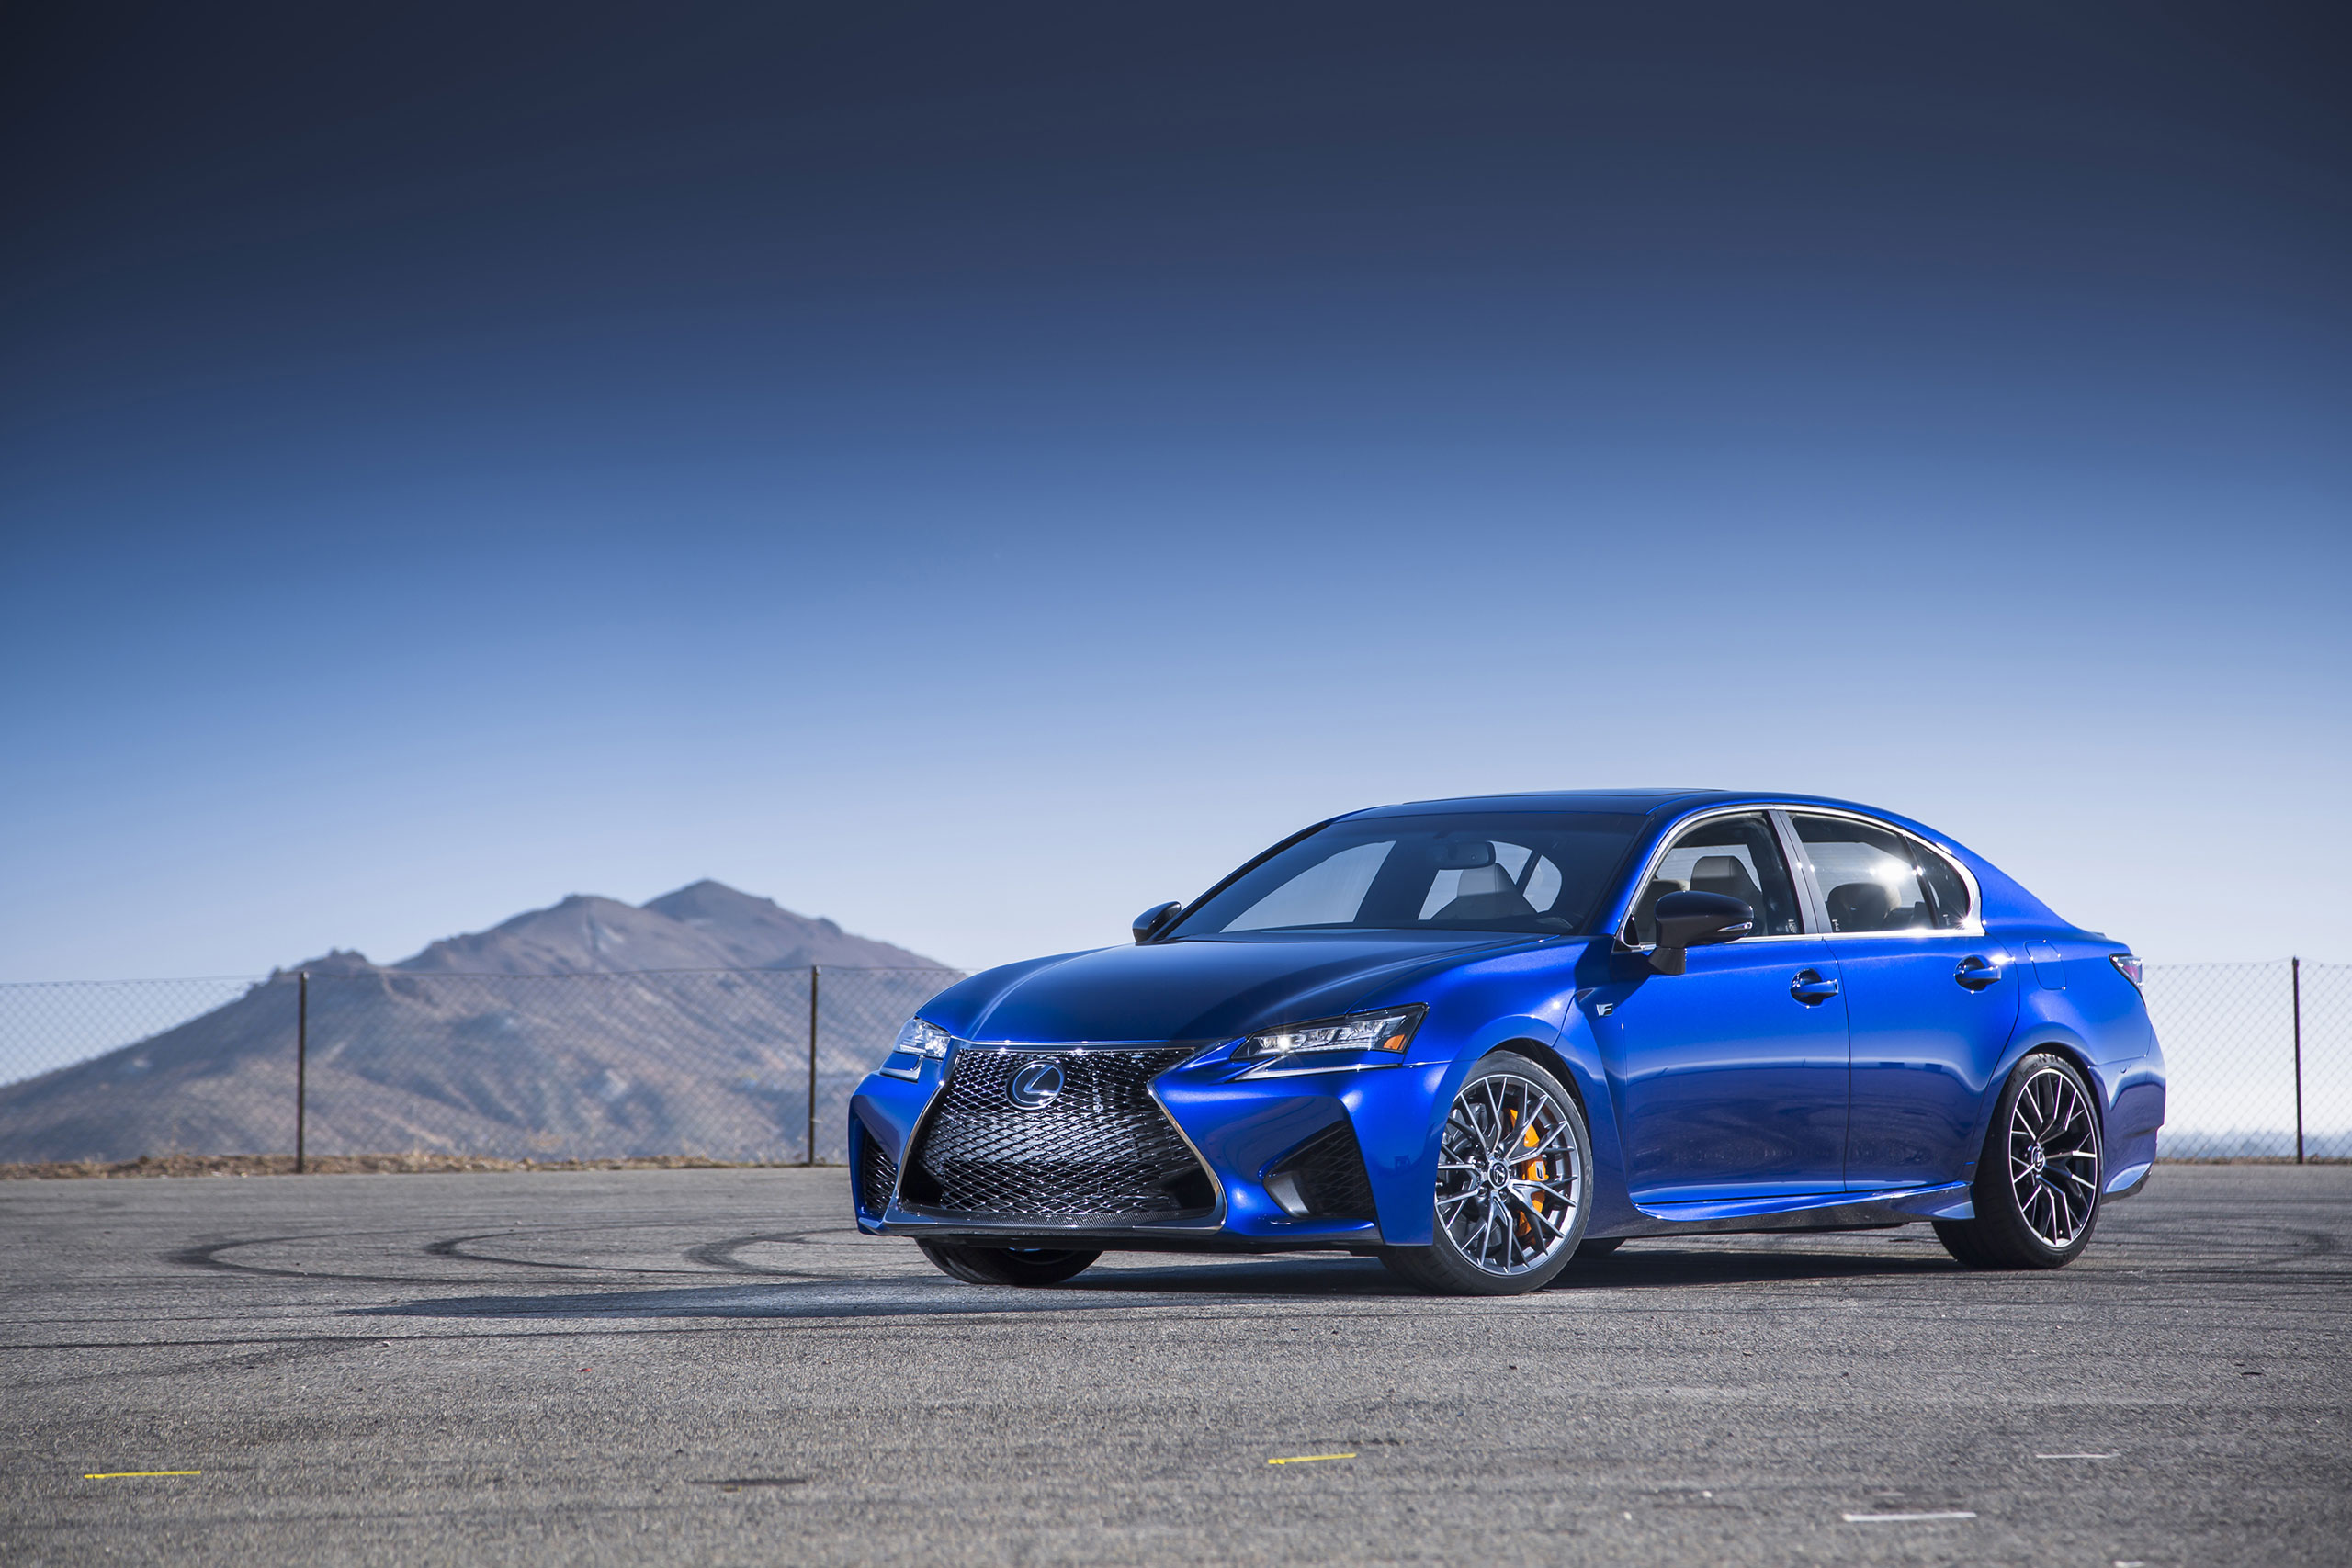 New Lexus Gs F Photo Image Gsf Picture Pictures to pin on Pinterest Lexus Enthusiast